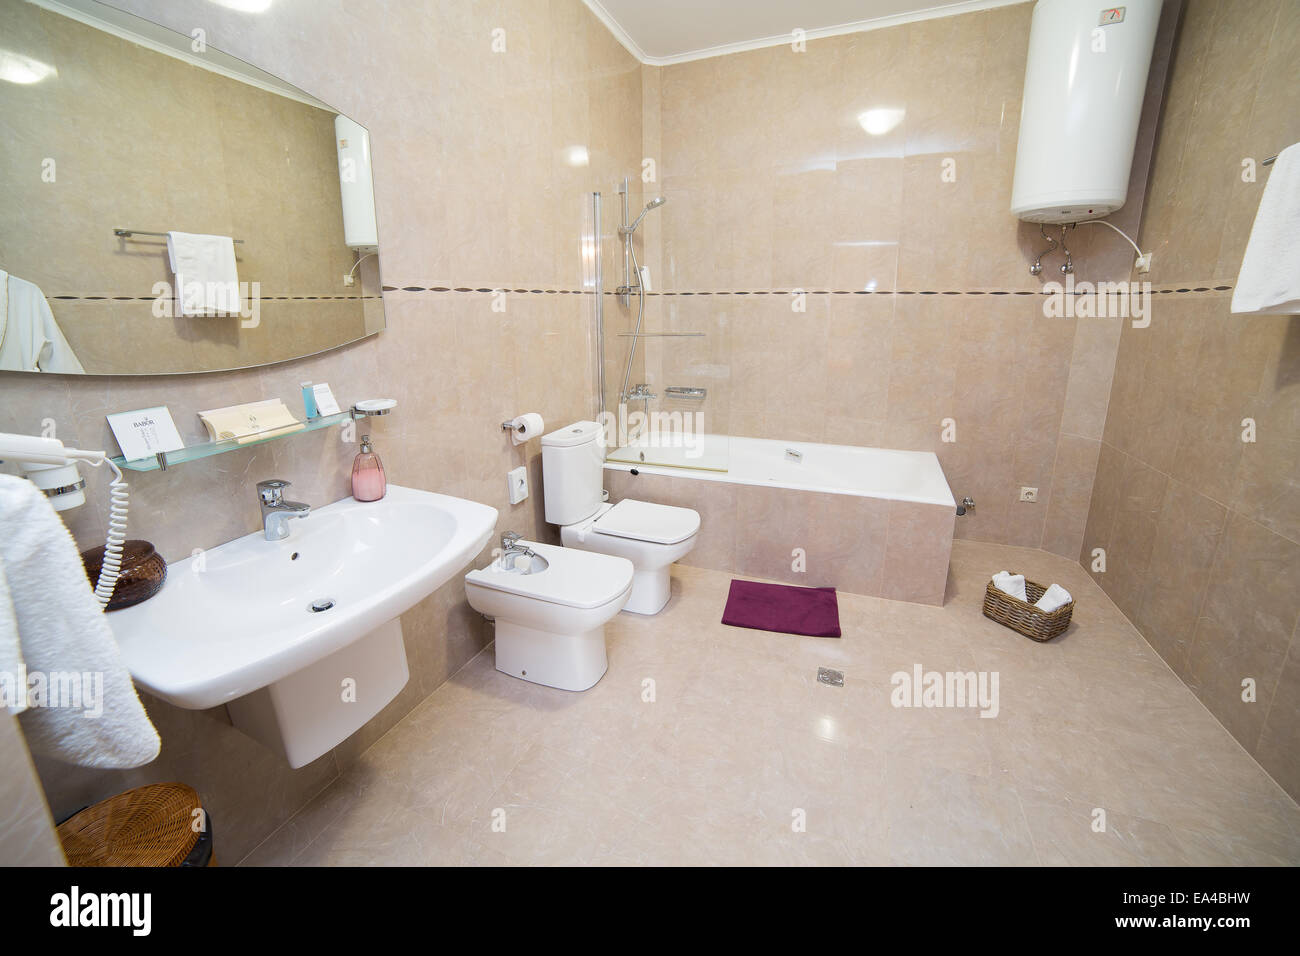 Bathroom Wc Toilet Lavatory Room Interior Design Stock